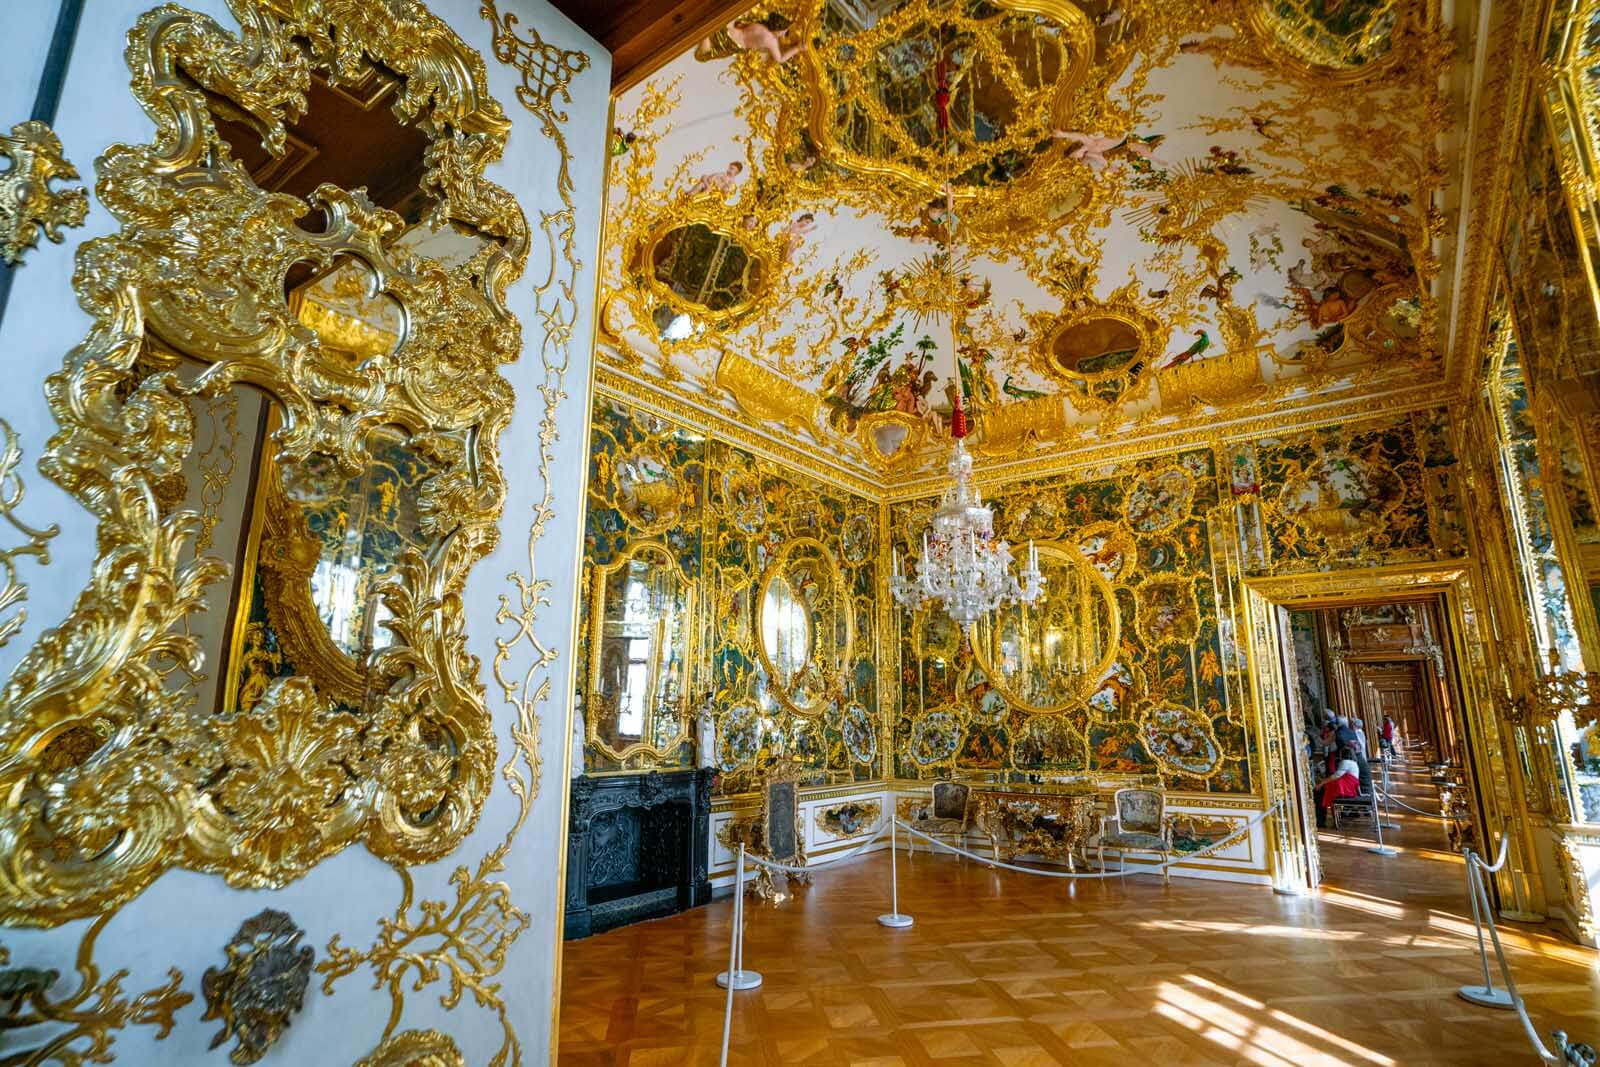 Room of Mirrors in Würzburg Residence in Germany